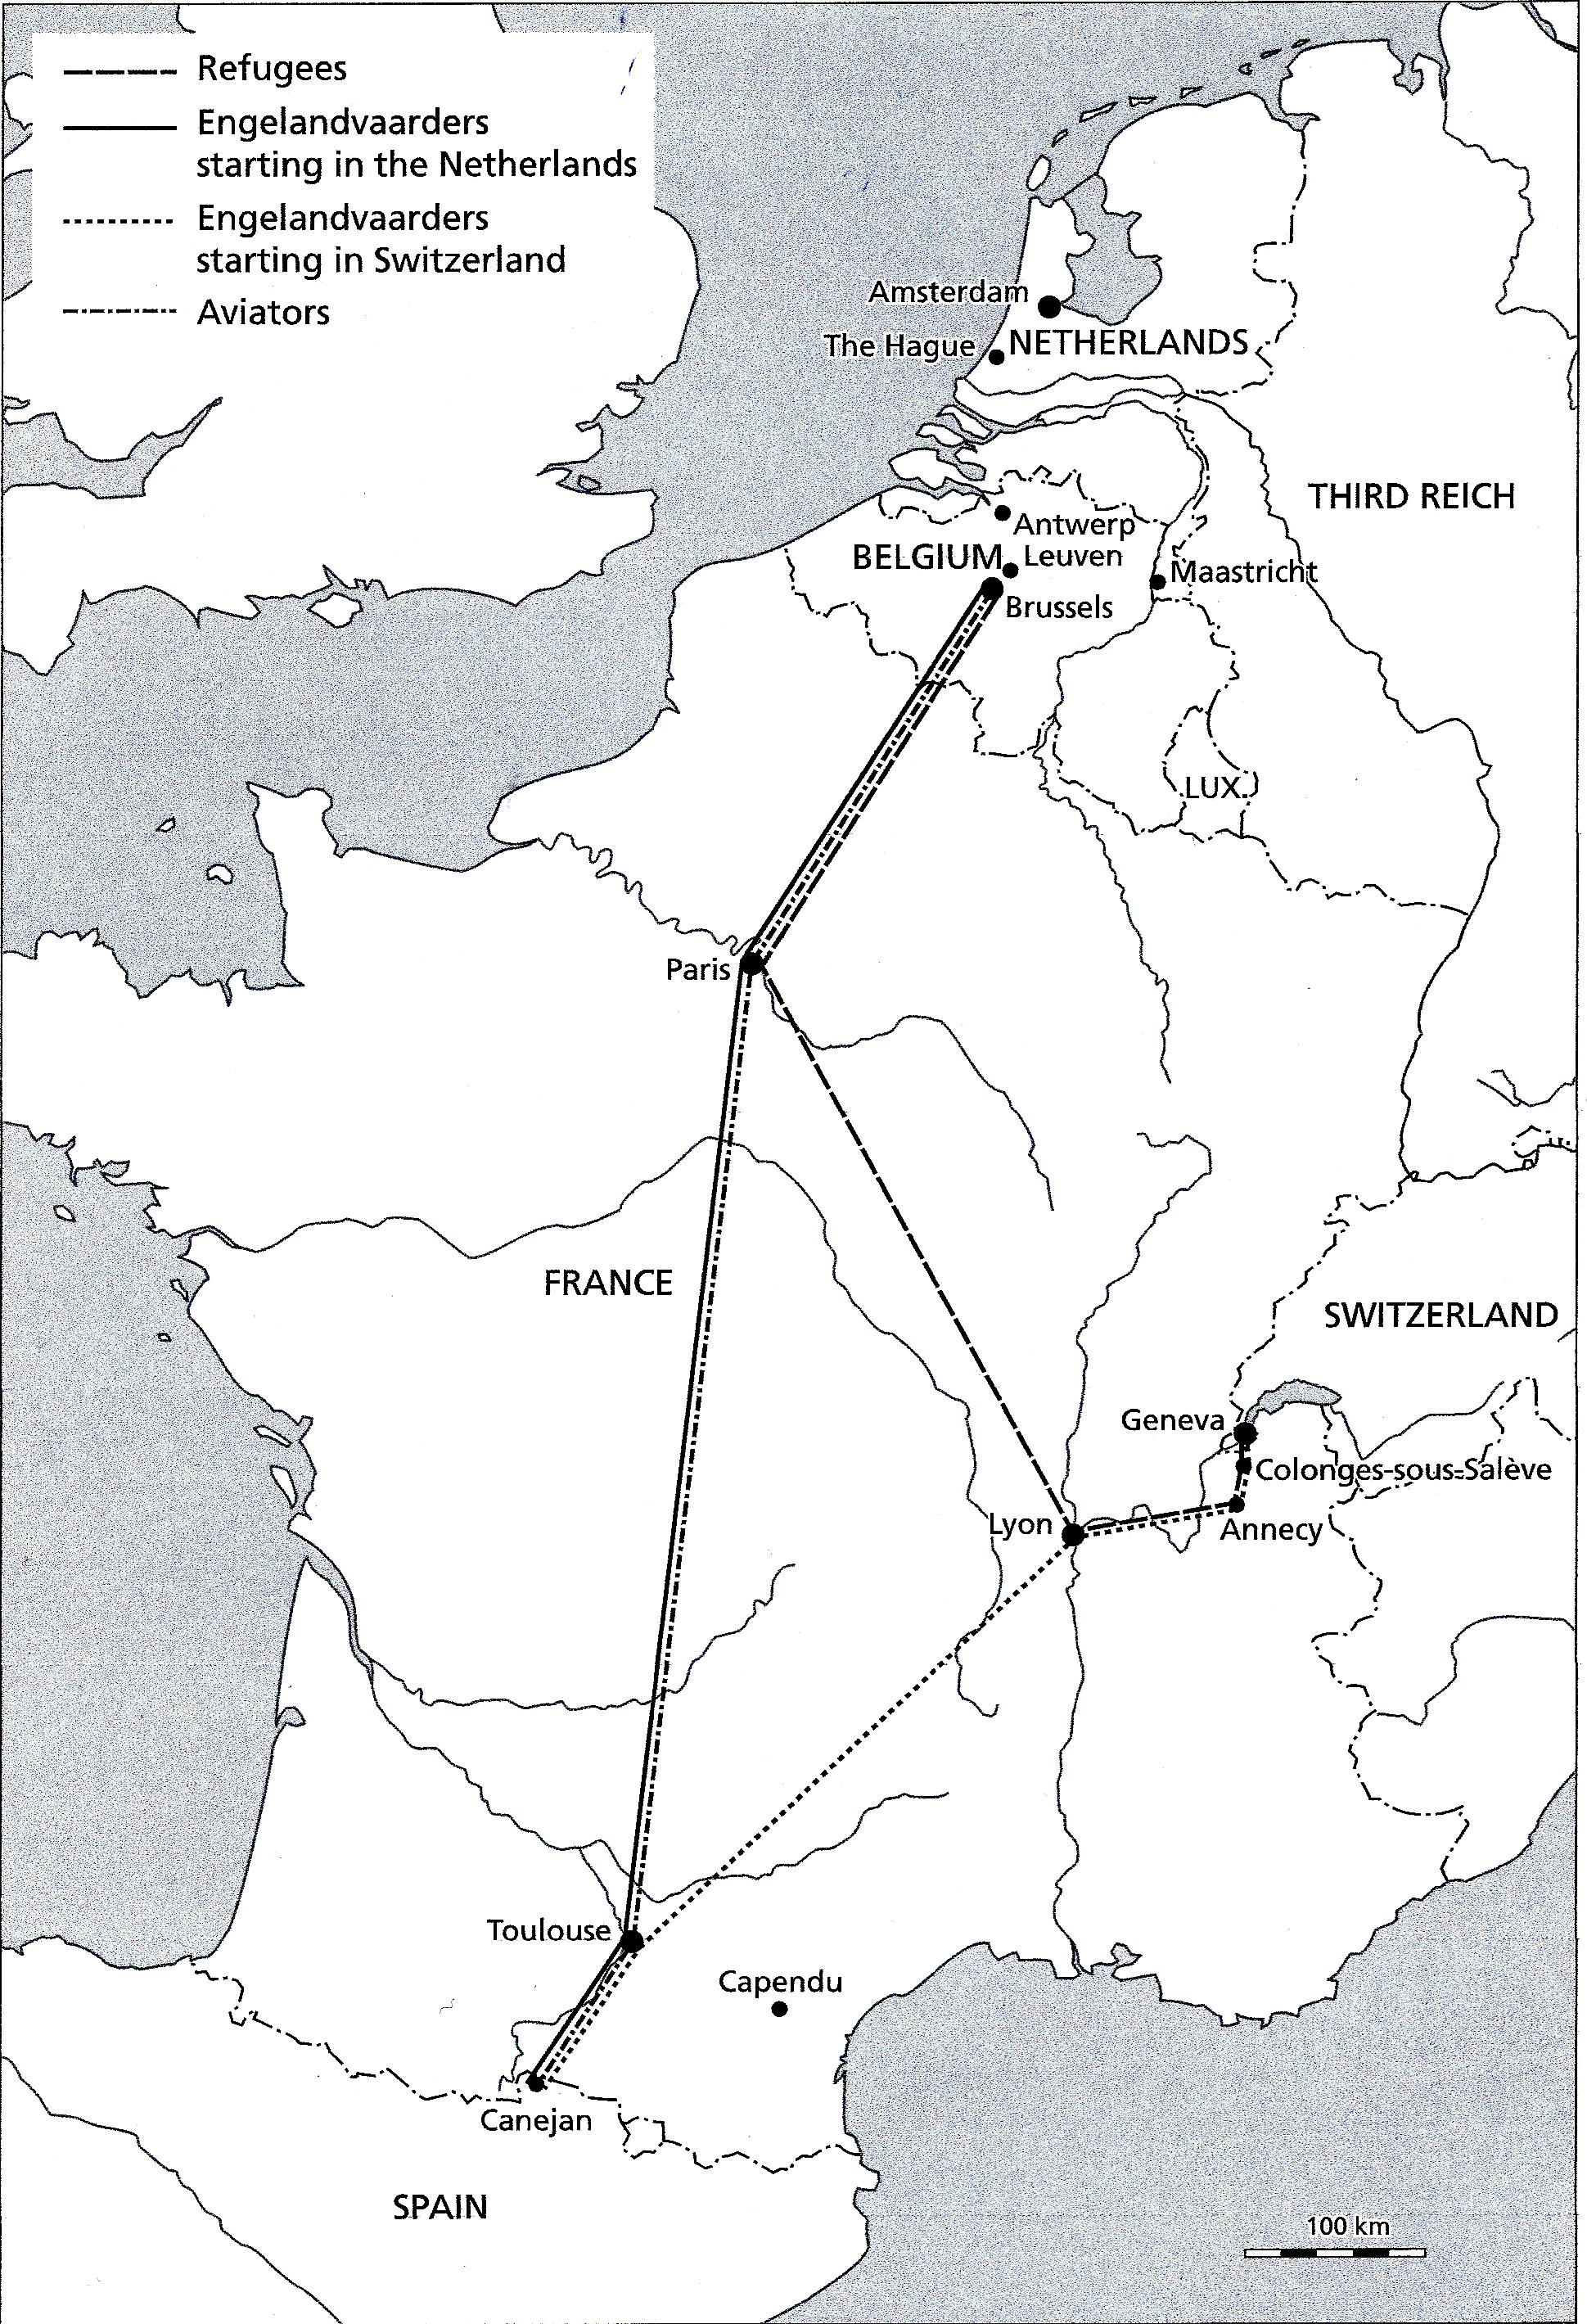 maps of major escape routes through france wwii netherlands